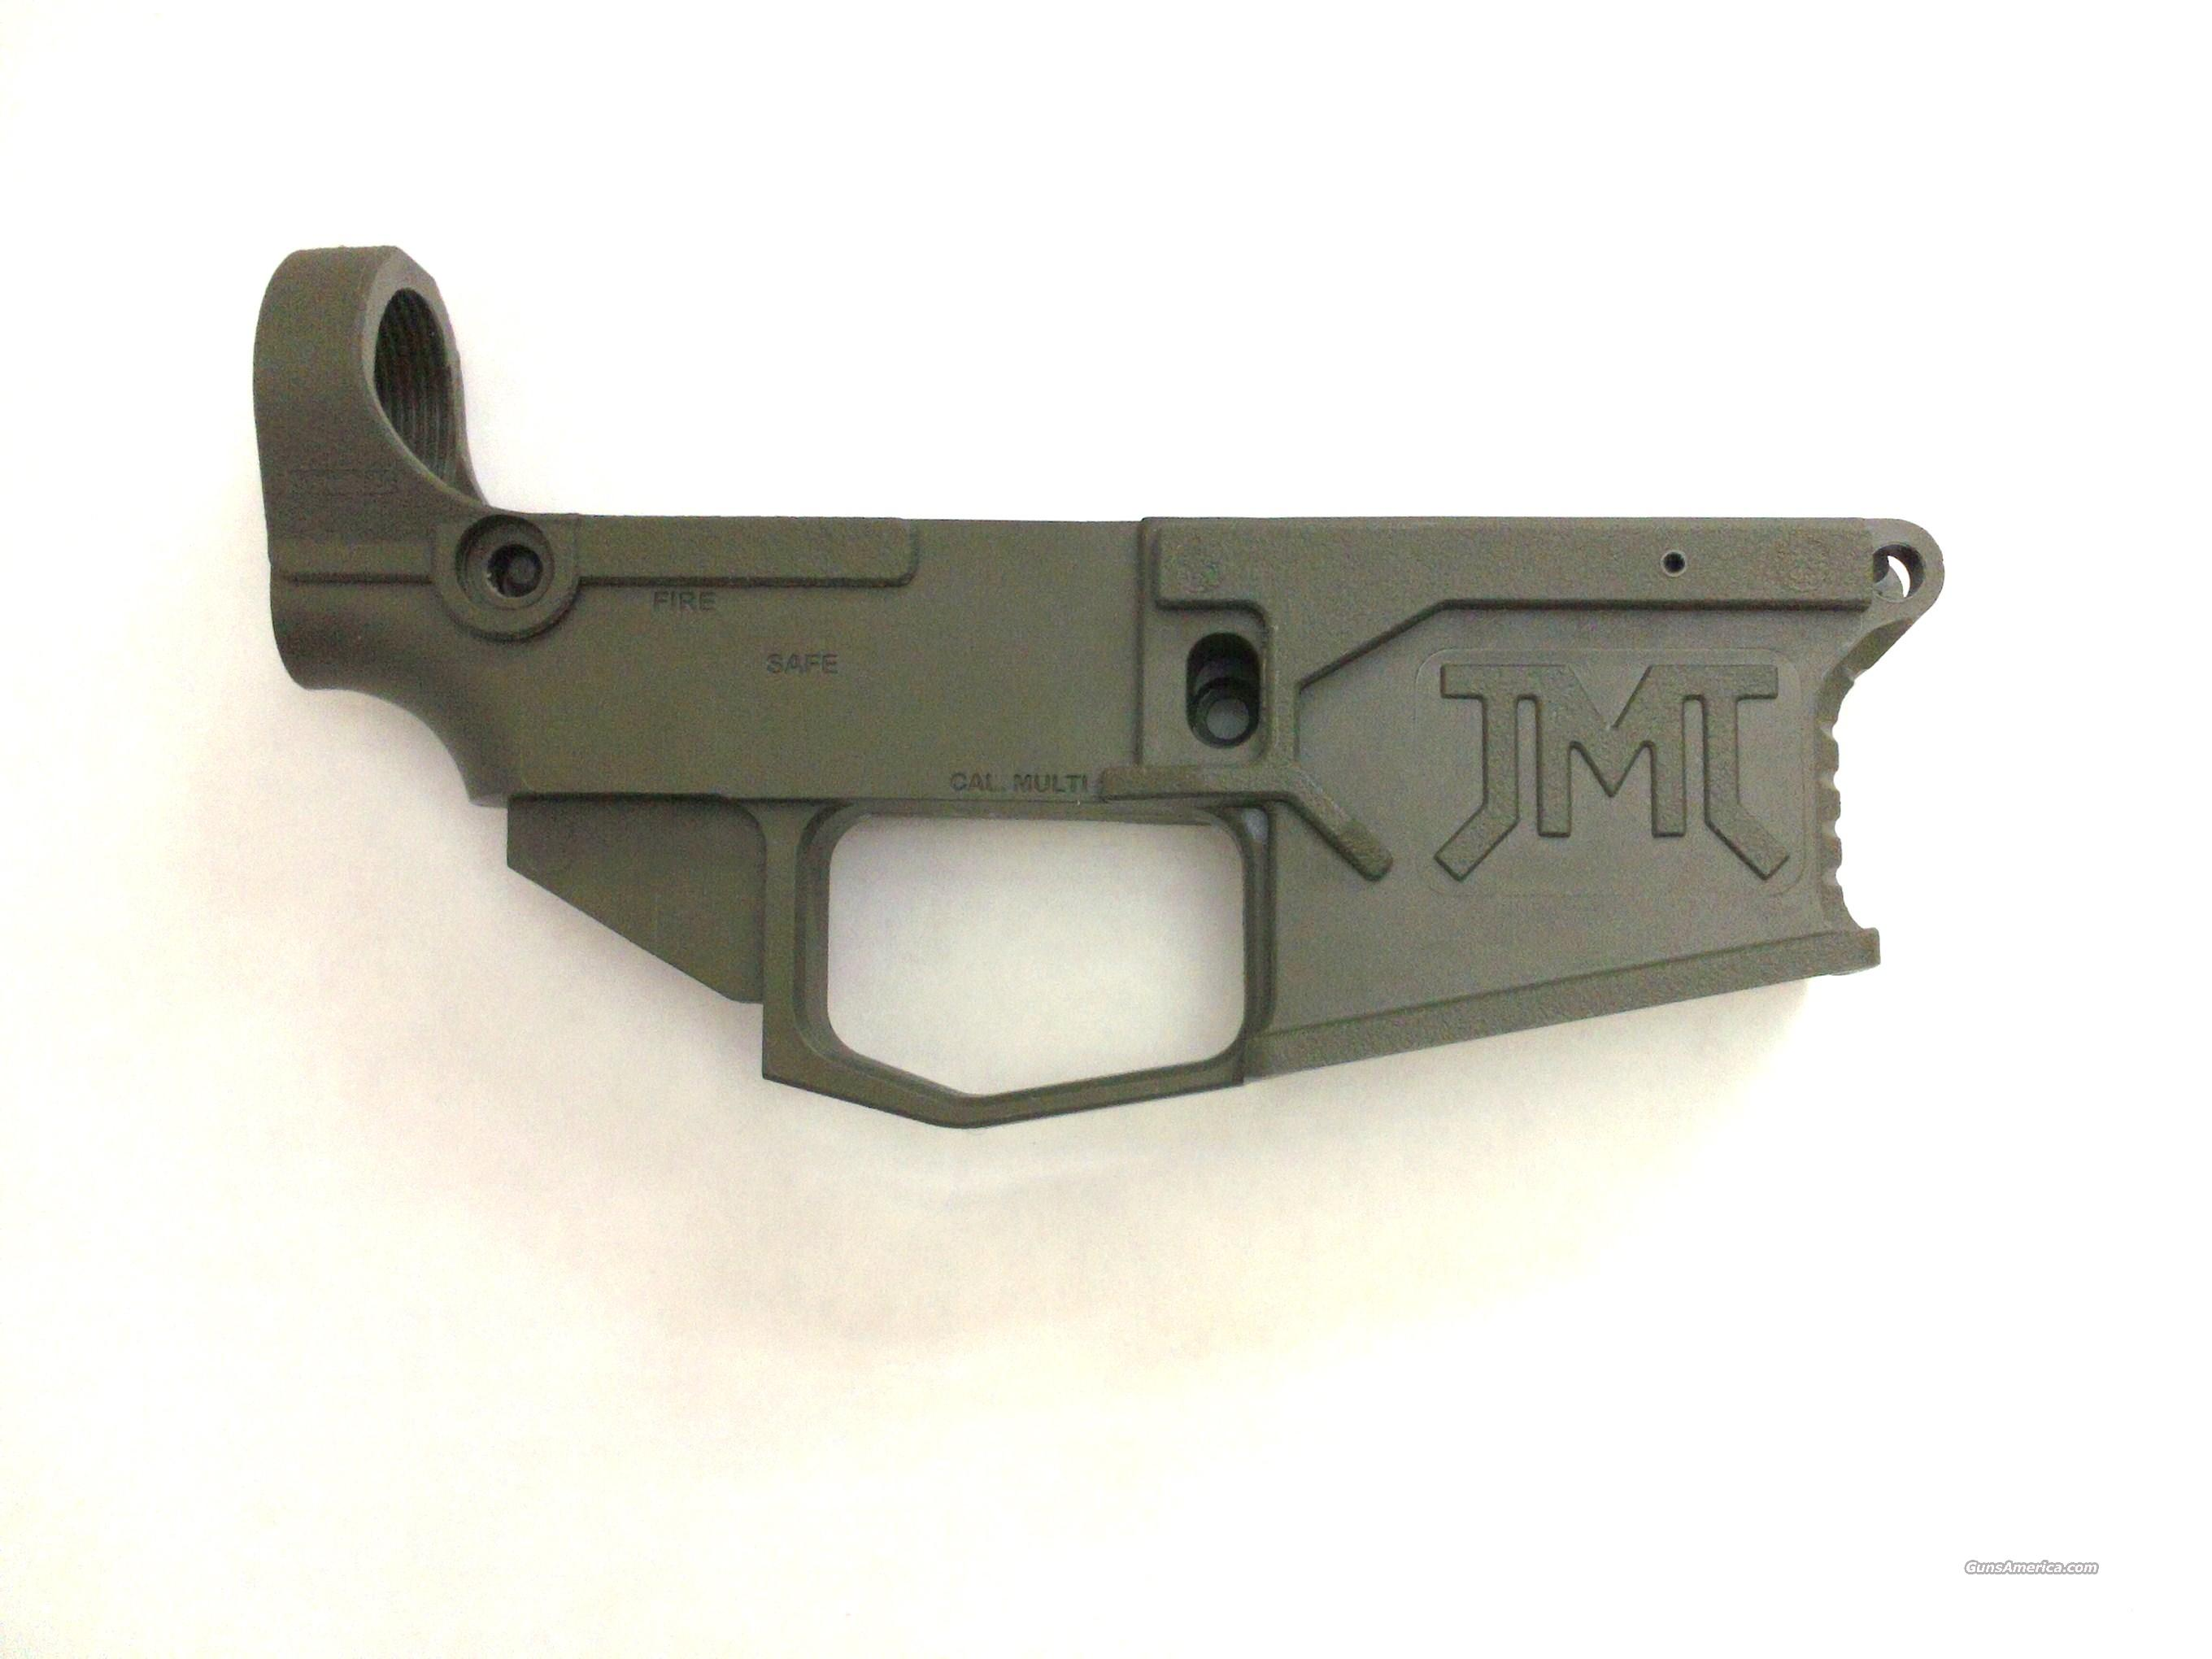 Polymer 80% AR15 Lower Receiver - Olive Drab  Non-Guns > Gun Parts > M16-AR15